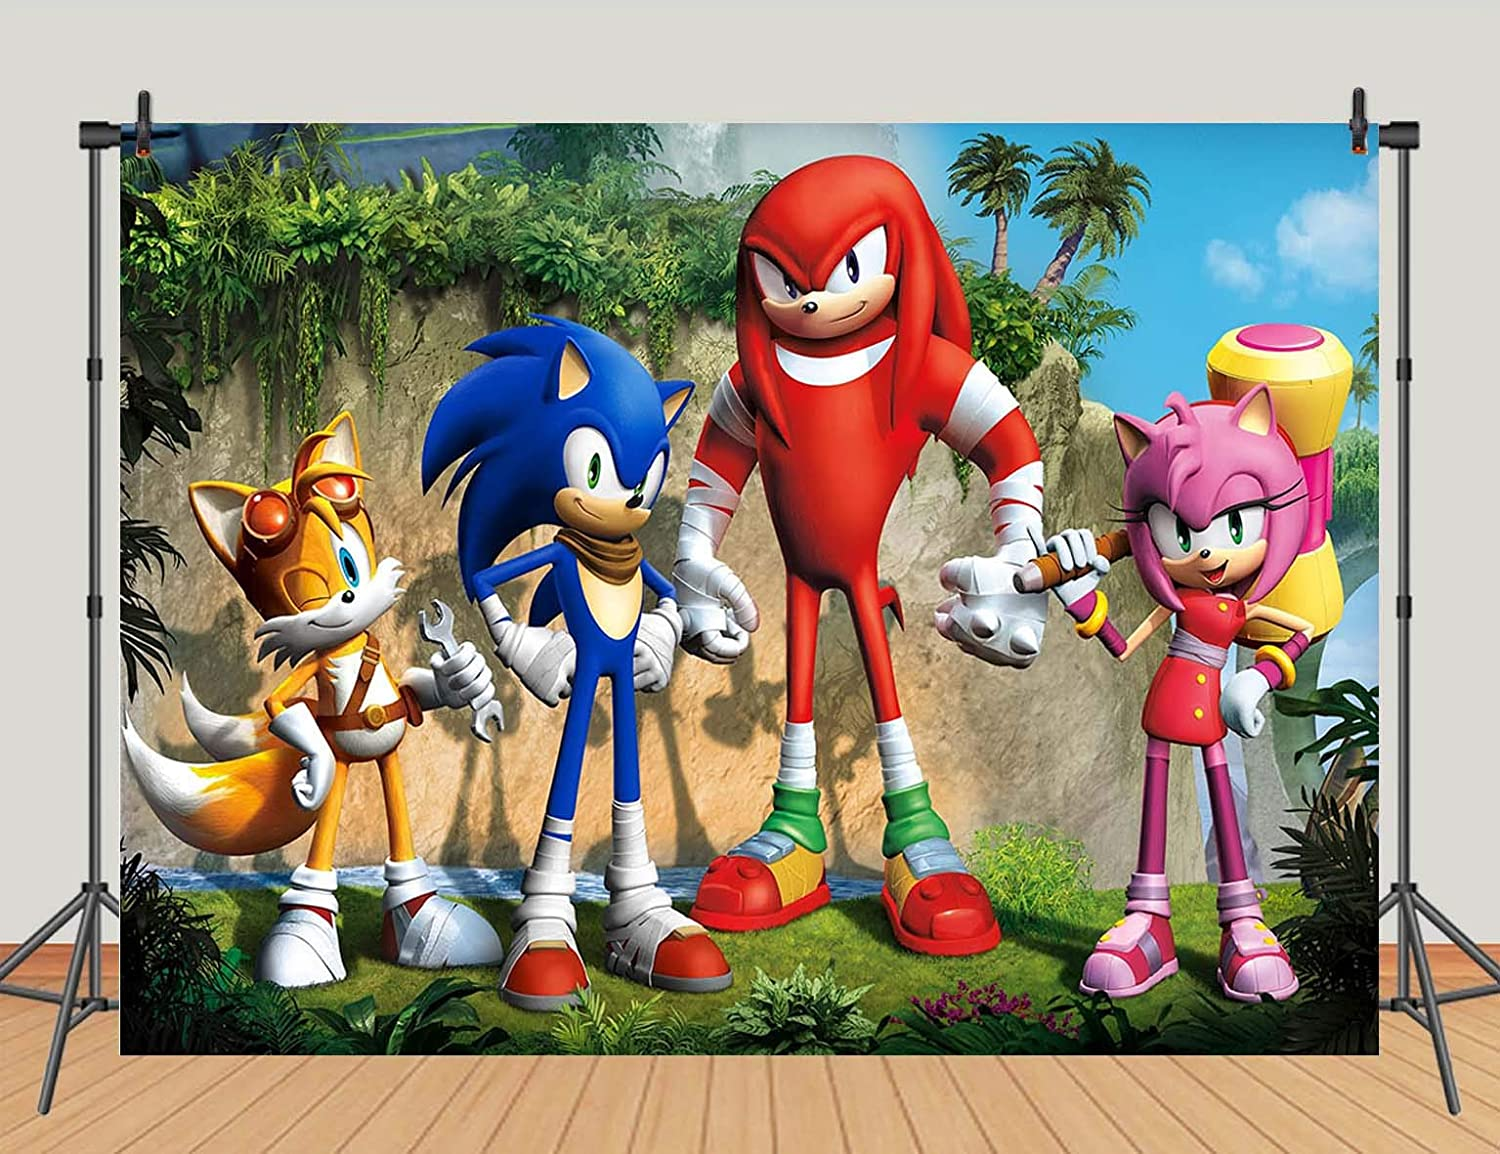 Cartoon Movie Hero Sonic Photography Backdrops Sonic Boom Theme Photo Background for Kids Birthday Party Decoration Baby Shower Cake Table Banner Studio Props Vinyl 7x5ft